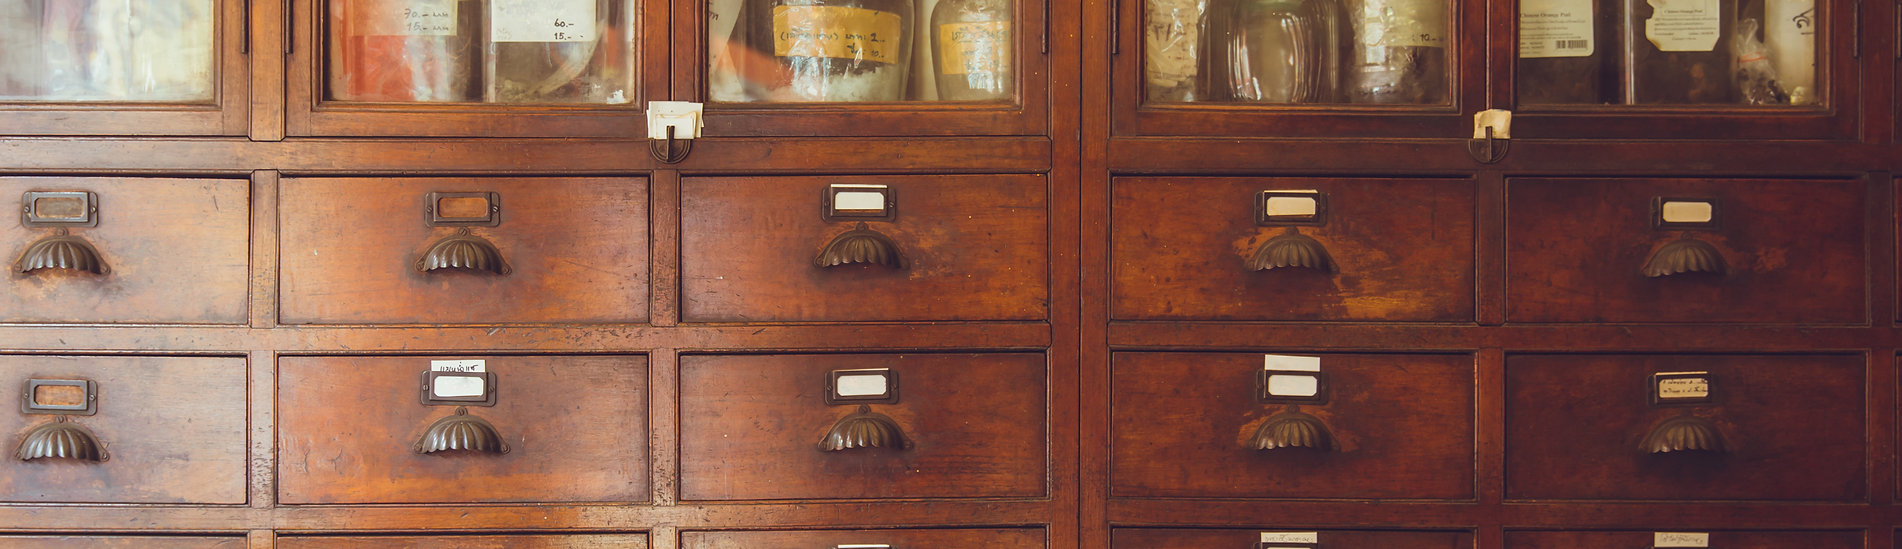 Old Pharmacy Cabinets.jpeg